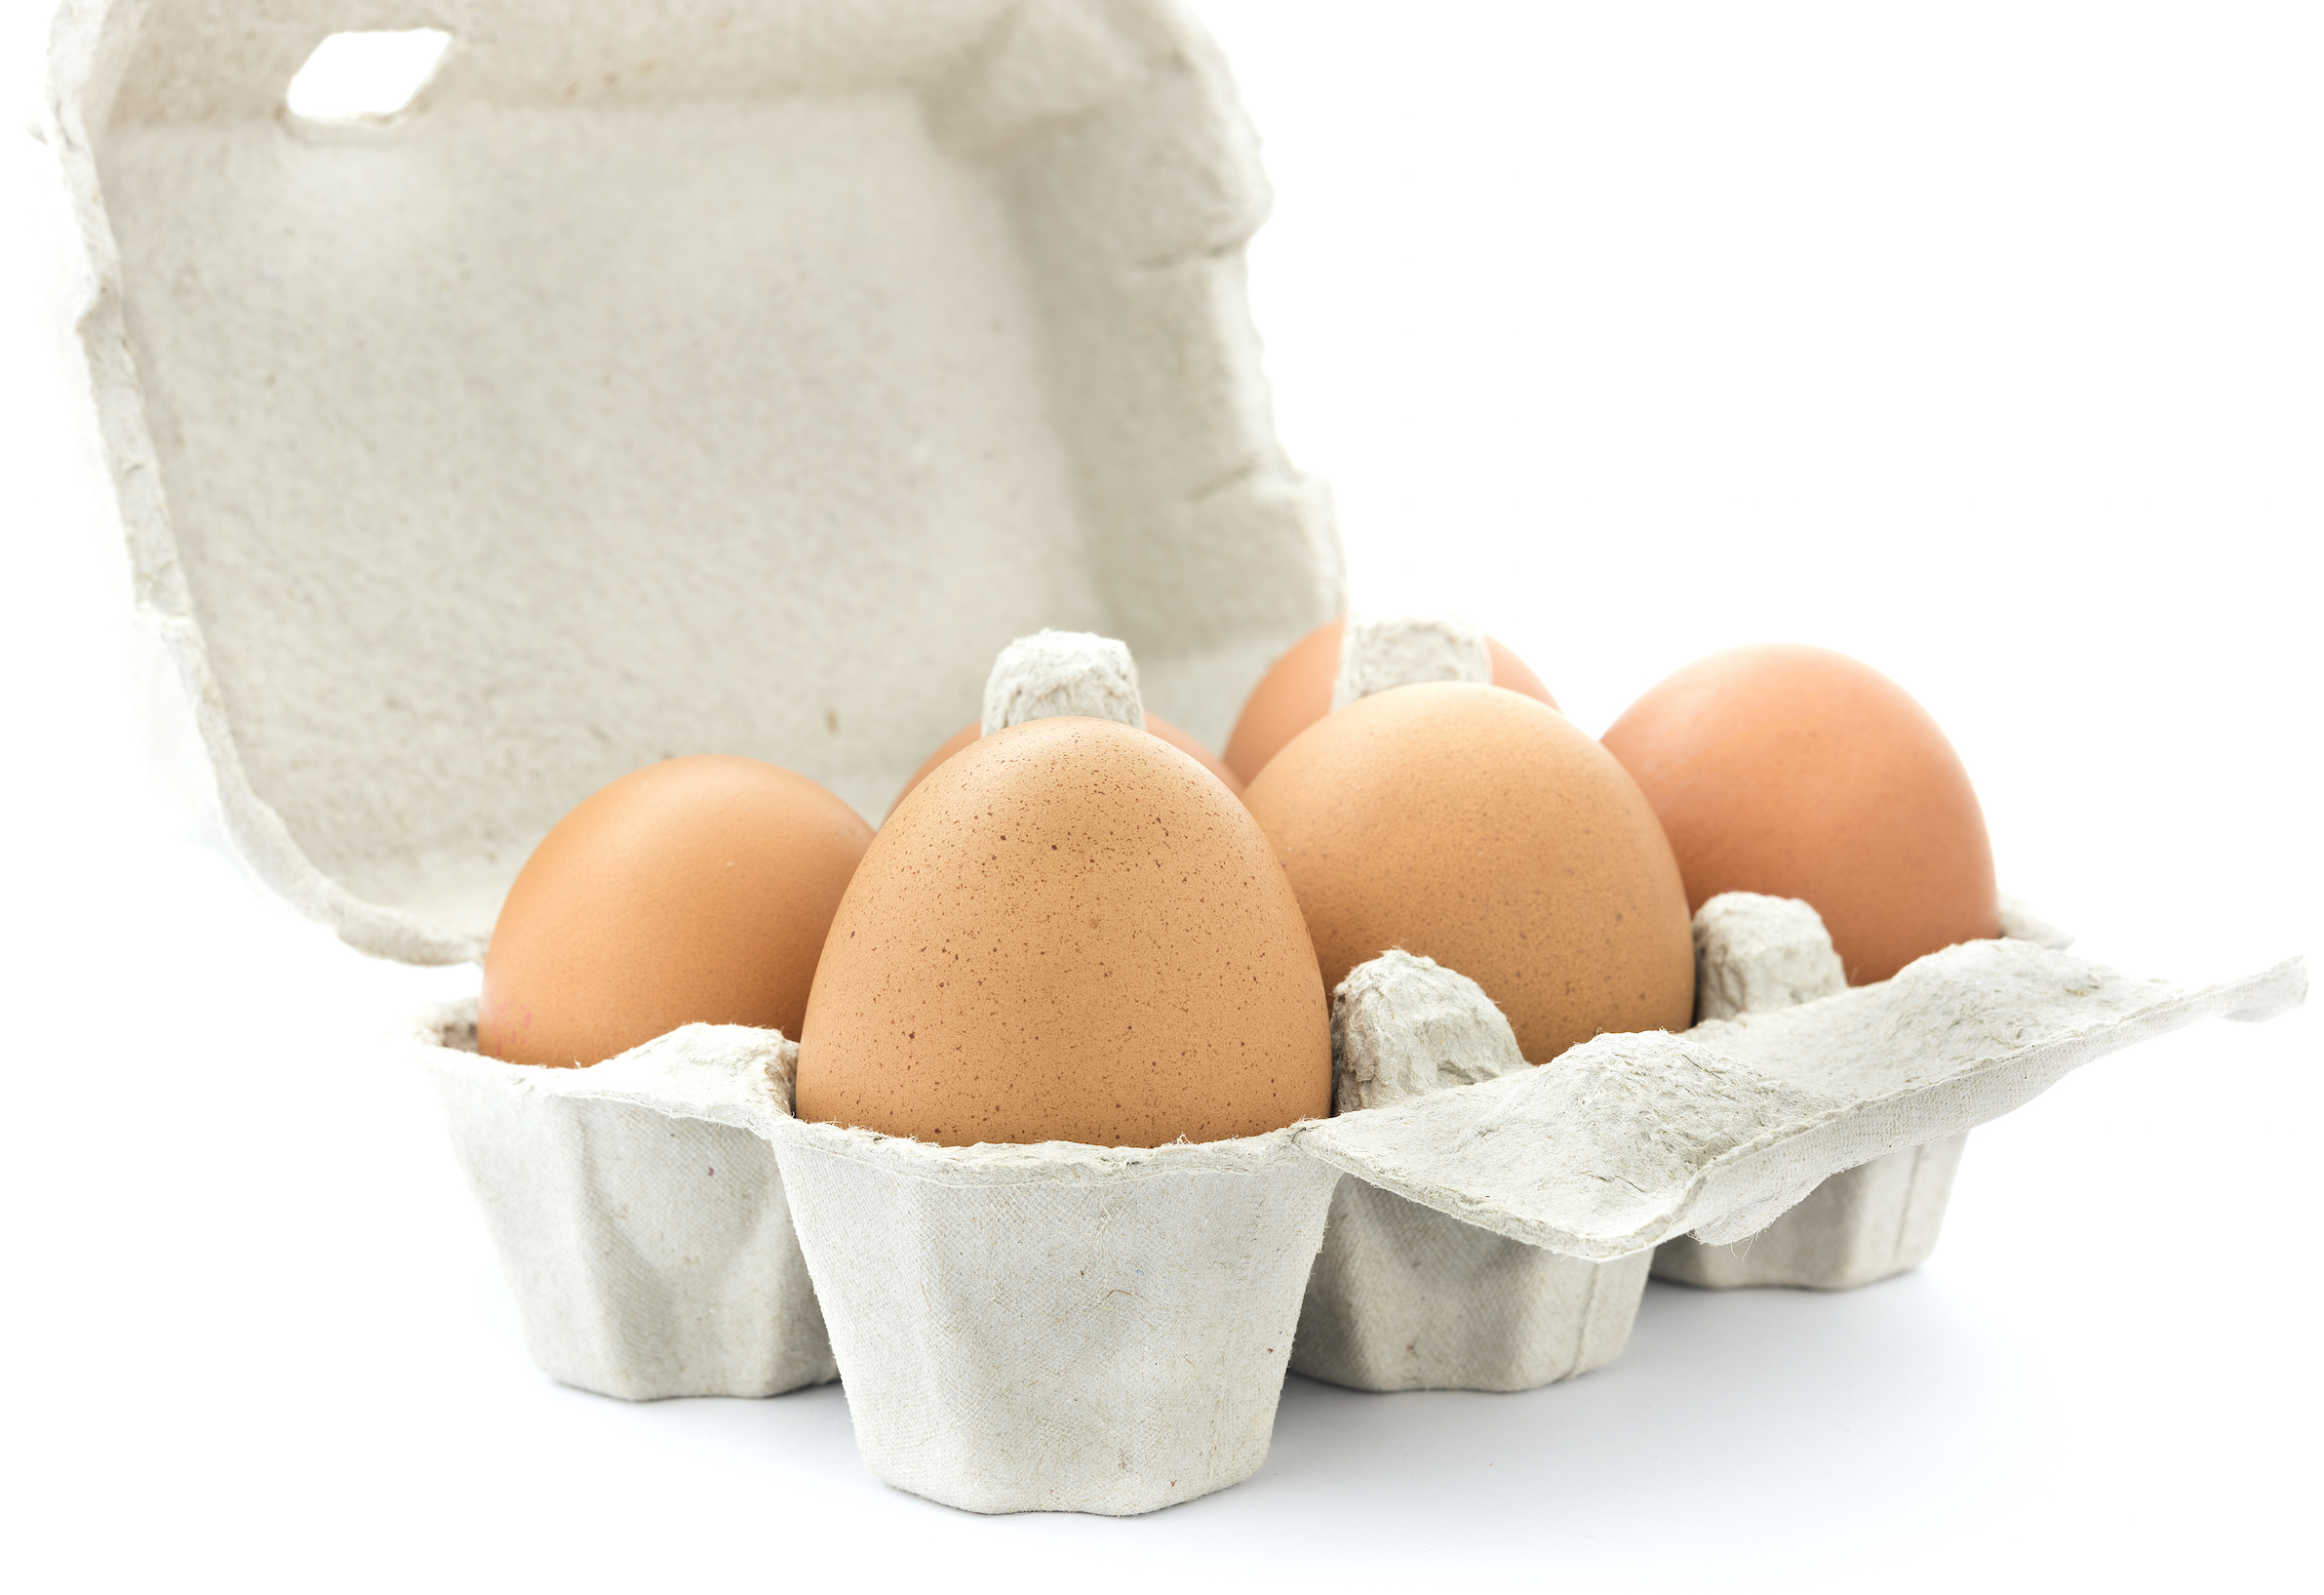 The most common reasons for purchasing free-range eggs were that they were viewed as being higher quality, more nutritious, and safer to eat.